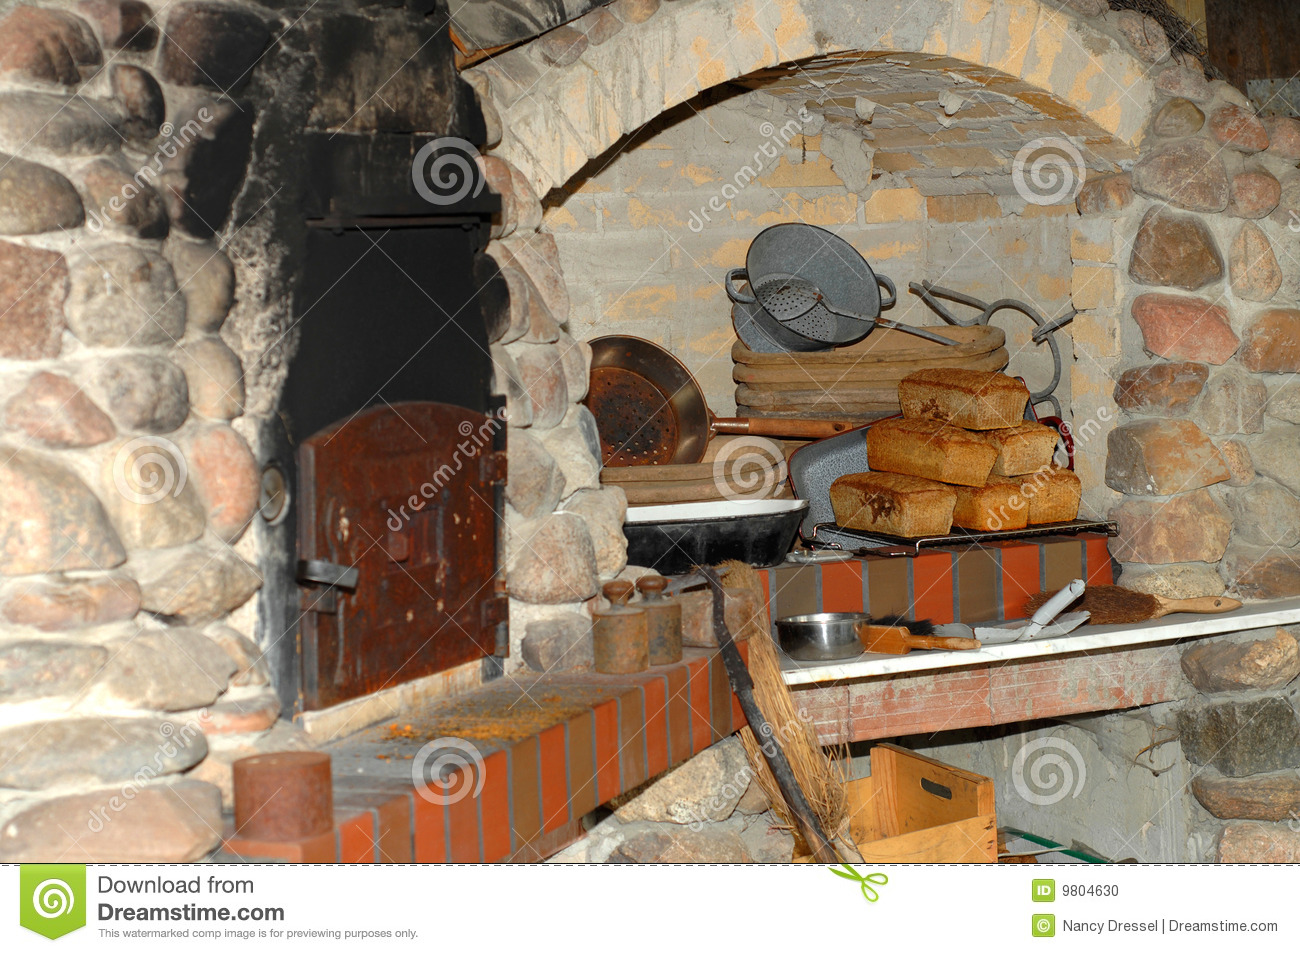 Fresh Homemade Bread In An Old Traditional Bakery With The Oven And Kitchen Utensils Background